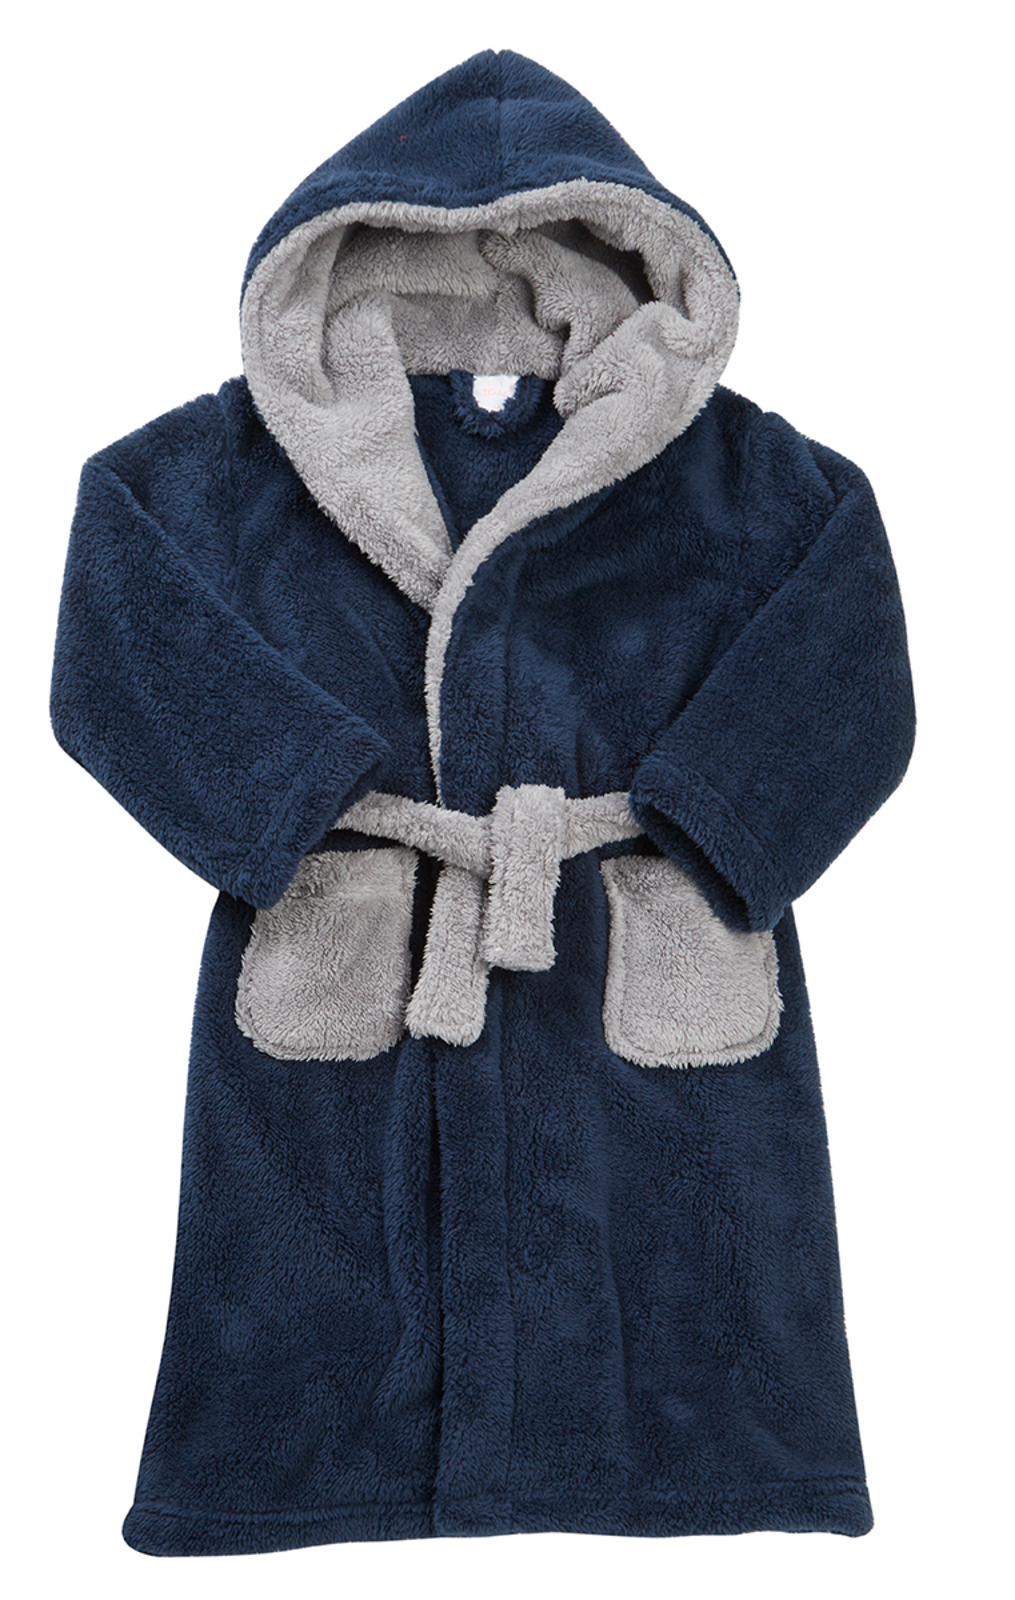 Boys Luxury Fleece Dressing Gown Hooded Bath Robe Housecoat Kids ... 8ce375541